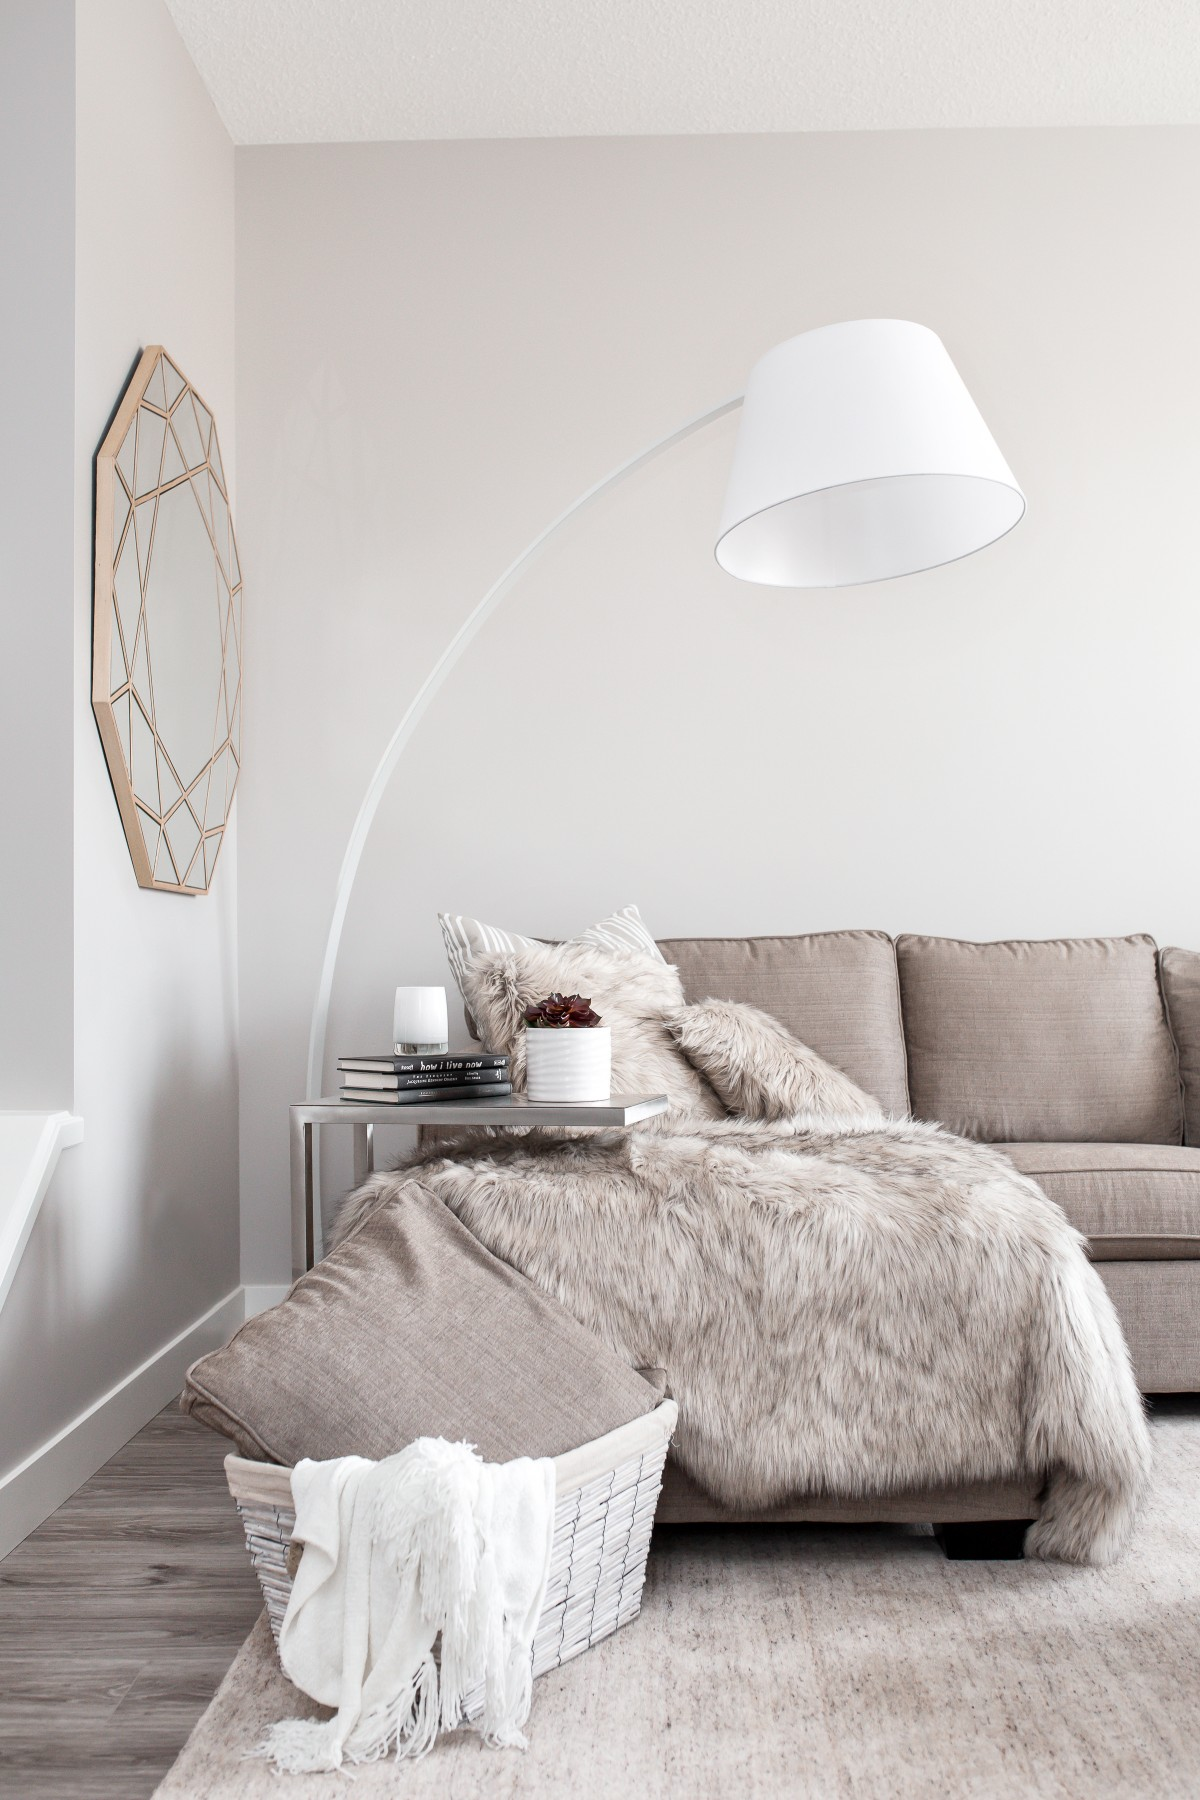 scandinavian decor tips and ideas grey and white neutral home style | Top 5 Scandinavian Home Decor Style Tips featured by popular US blogger Style Elixir